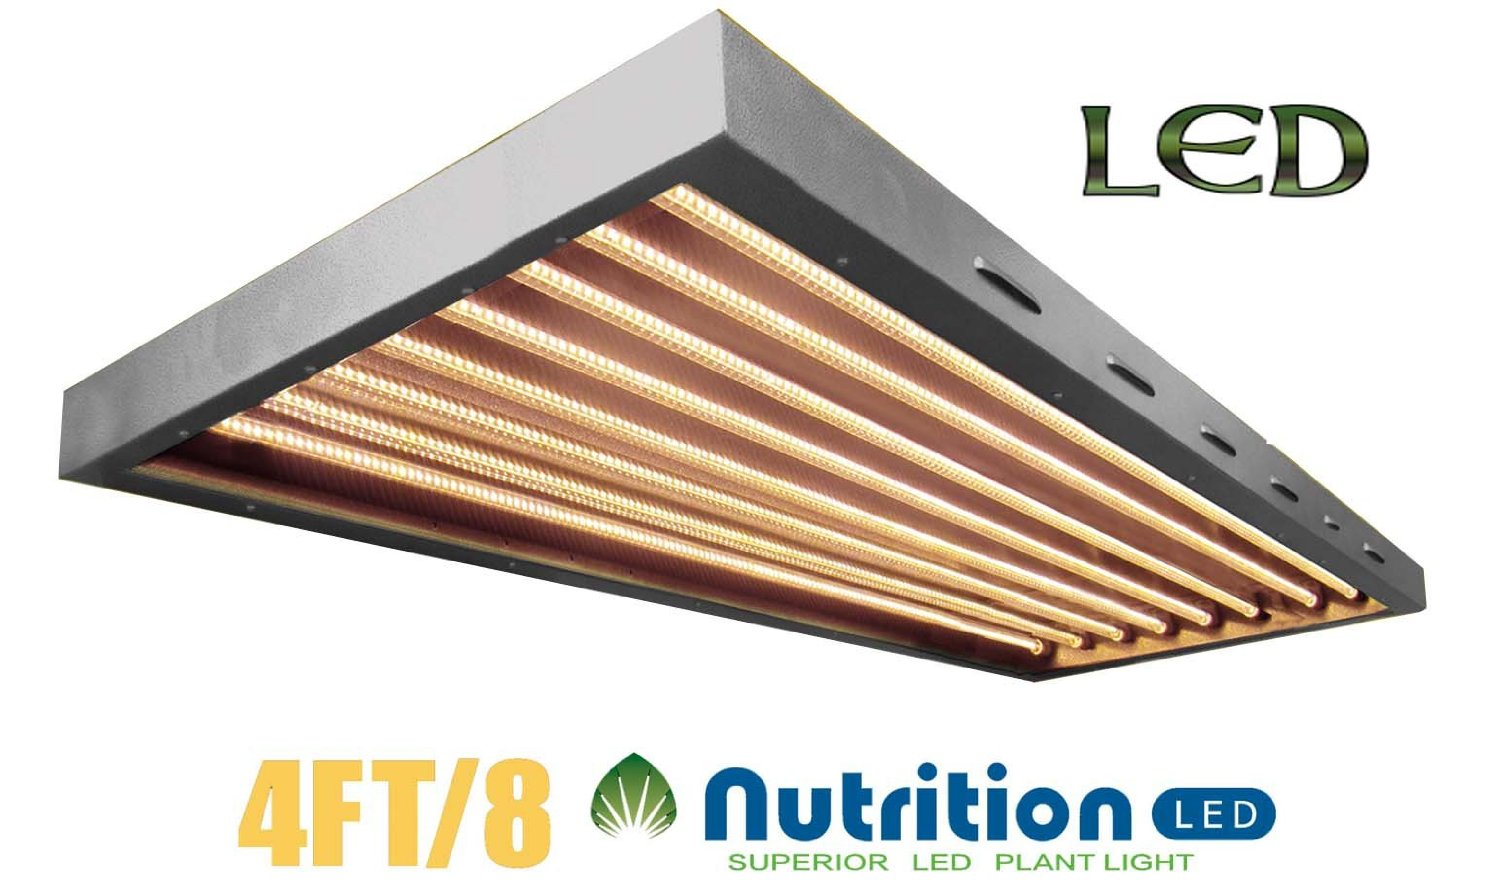 Cheap Led 4 Foot Tubes Find Deals On Line At 8 Fluorescent Light Fixture Wiring Get Quotations Aibc Supert 4ft 8tb T5 160w Grow Panel Optimized Full Spectrum